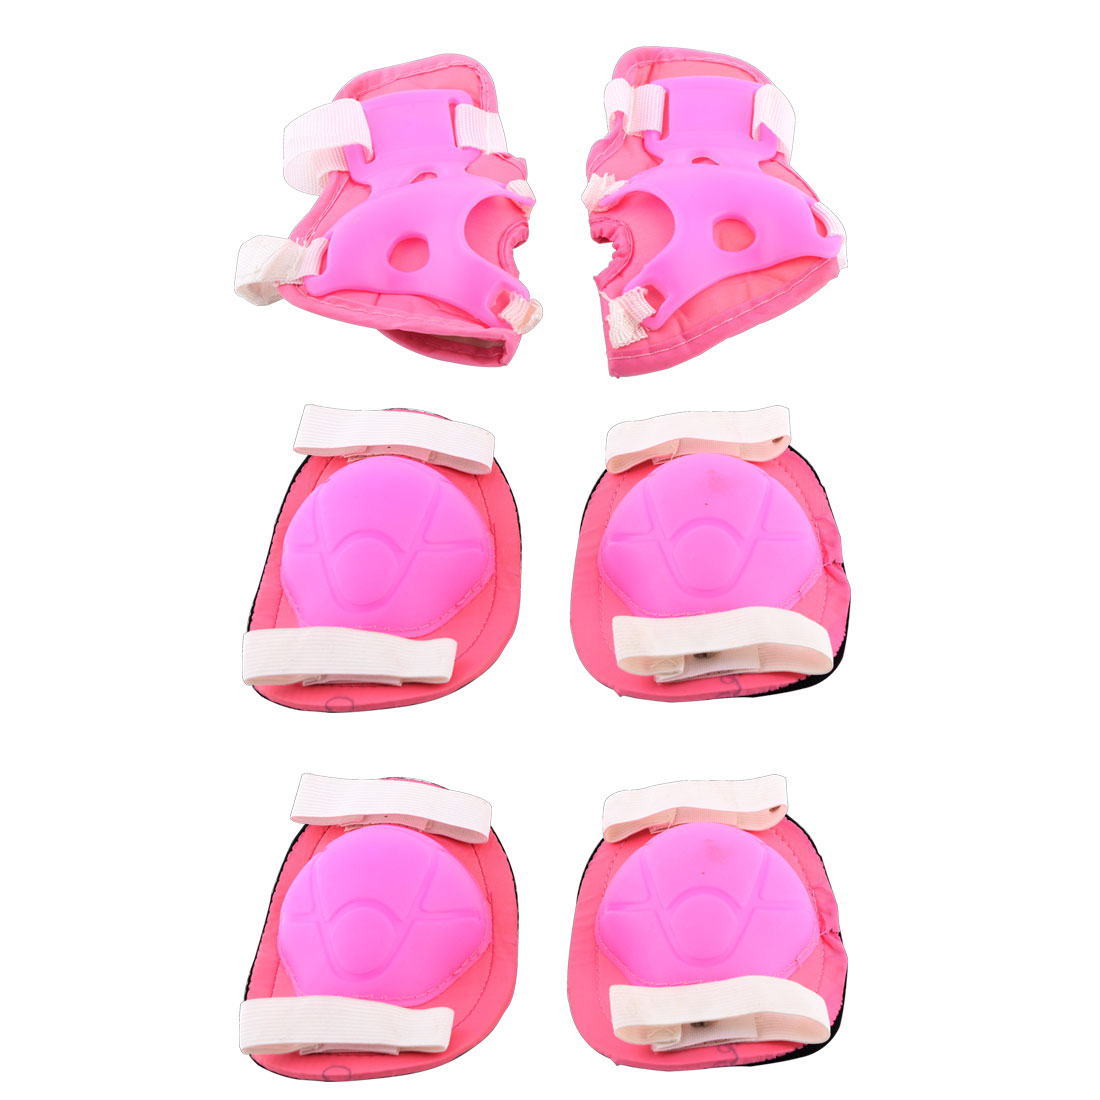 Cycling Roller Skating Sports Knee Elbow Wrist Pads Protective Outfits Pink 6 in 1